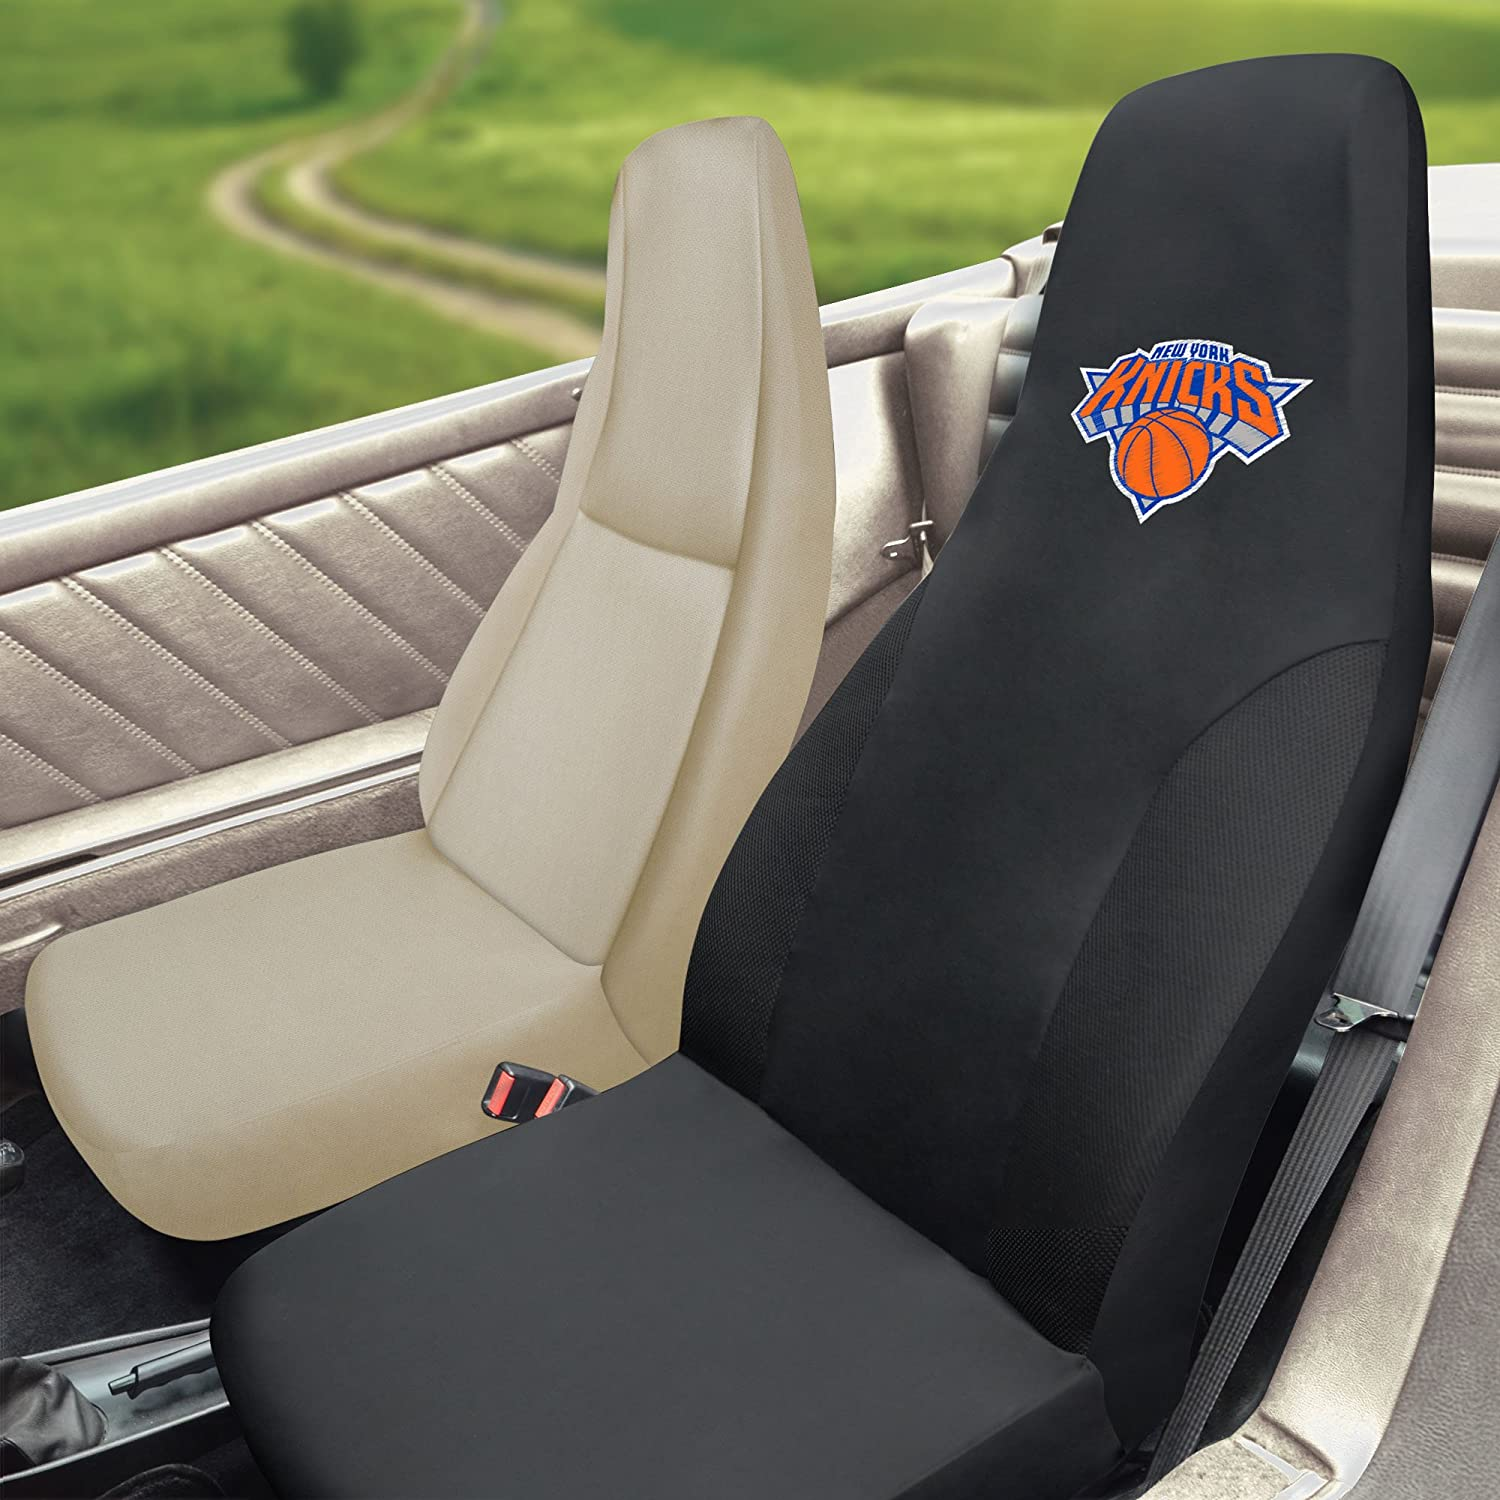 FANMATS NBA New York Knicks Polyester Seat Cover 15124